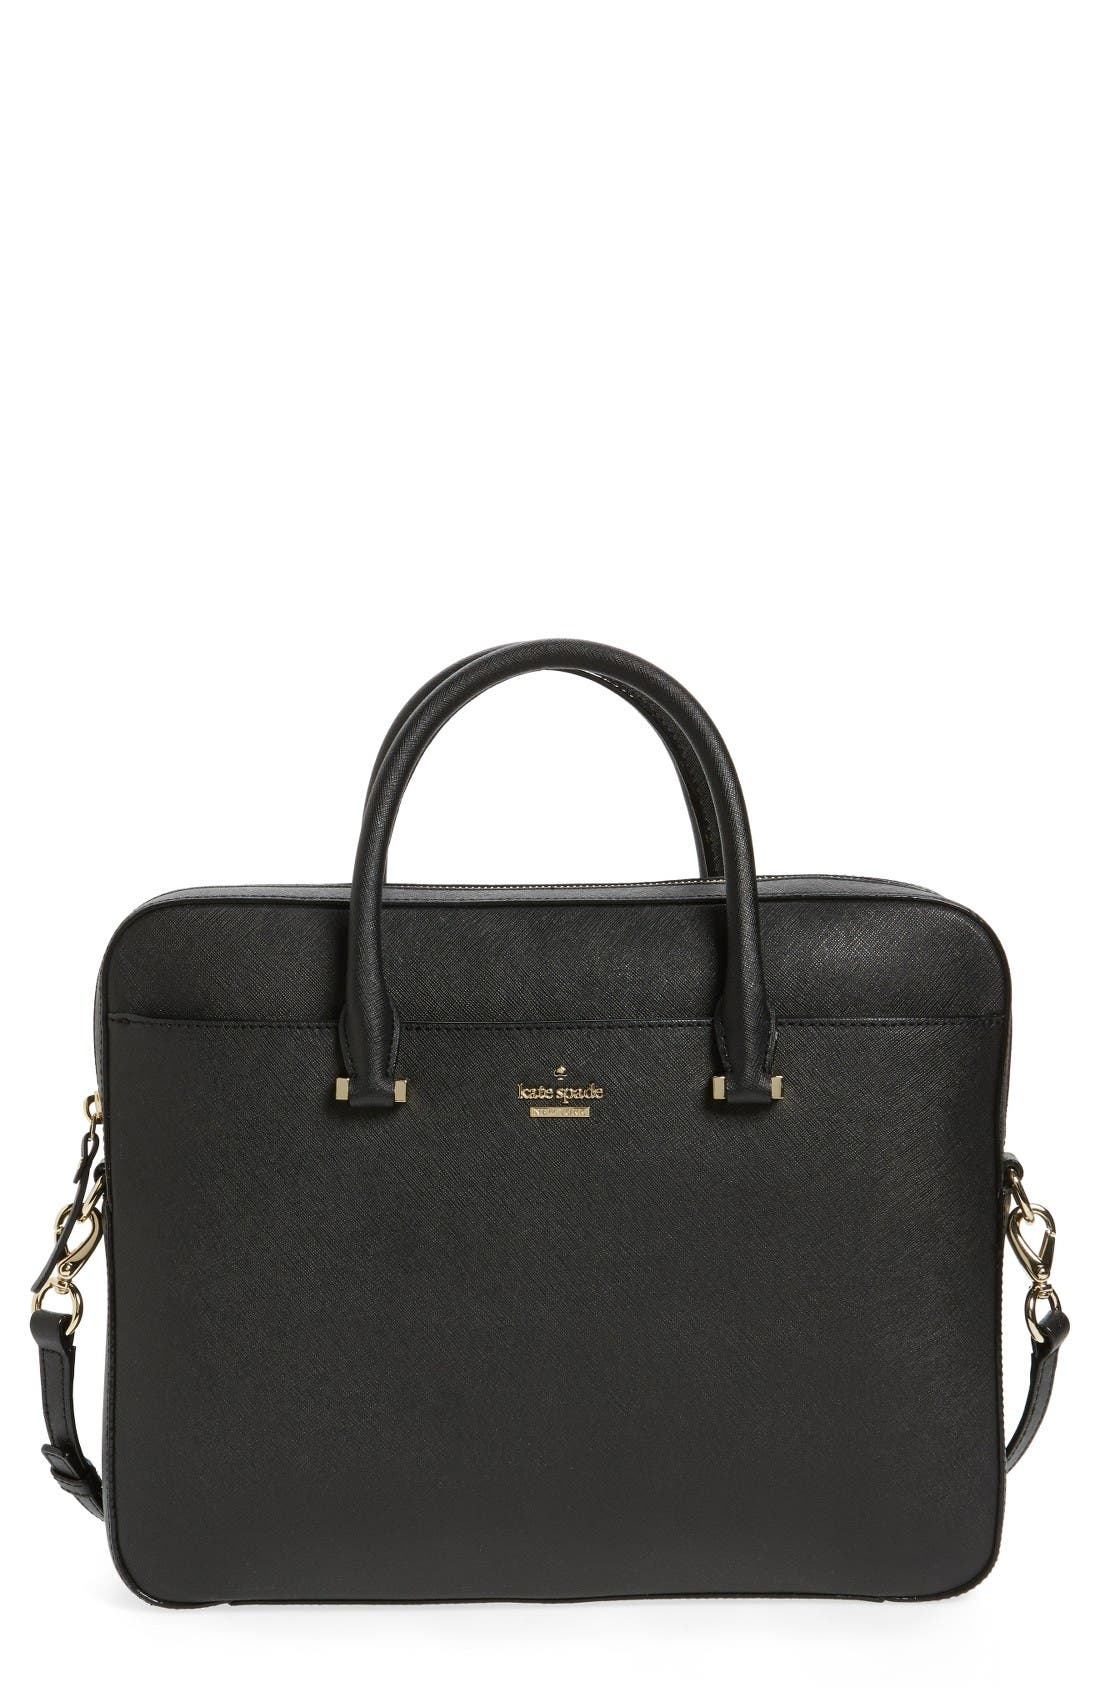 kate spade new york saffiano leather 13 inch laptop bag